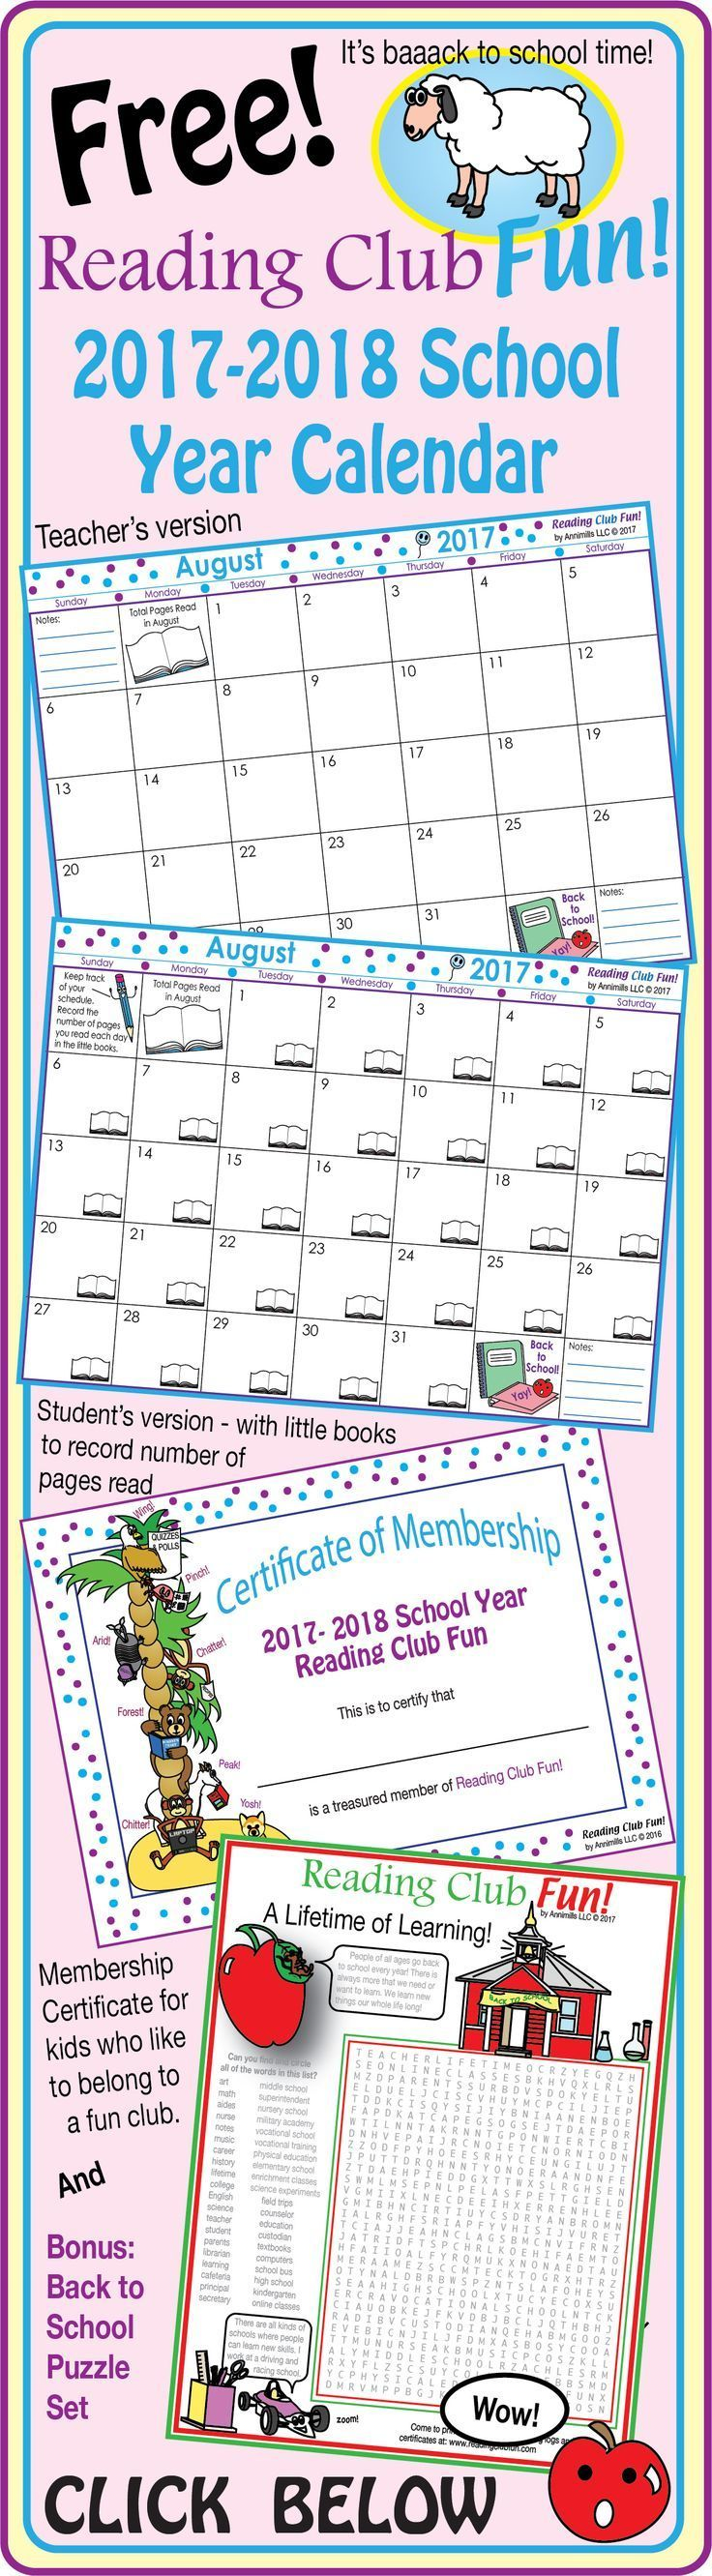 FREE - 2017-2018 Mega Bundle SCHOOL YEAR CALENDAR (Back to School) - Enjoy 38 pages of back-to-school goodness! Includes: Reading Club Fun Membership Certificate; 2017-2018 School Year Calendar - Teacher Edition; 2017-2018 School Year Calendar - Student Edition; puzzle set.